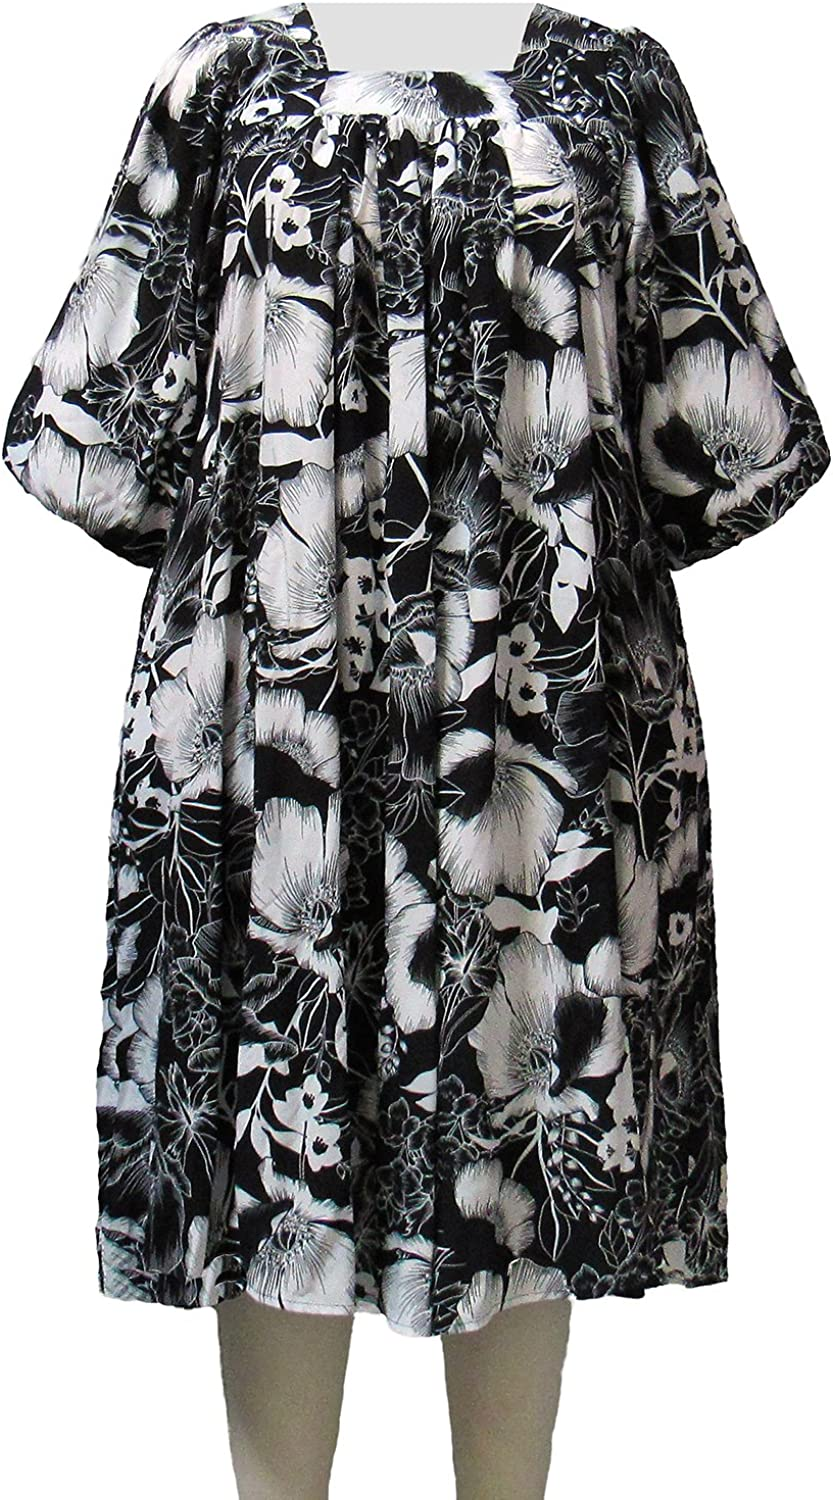 A Personal Touch Black & White Blossom Women's Plus Size Float Dress